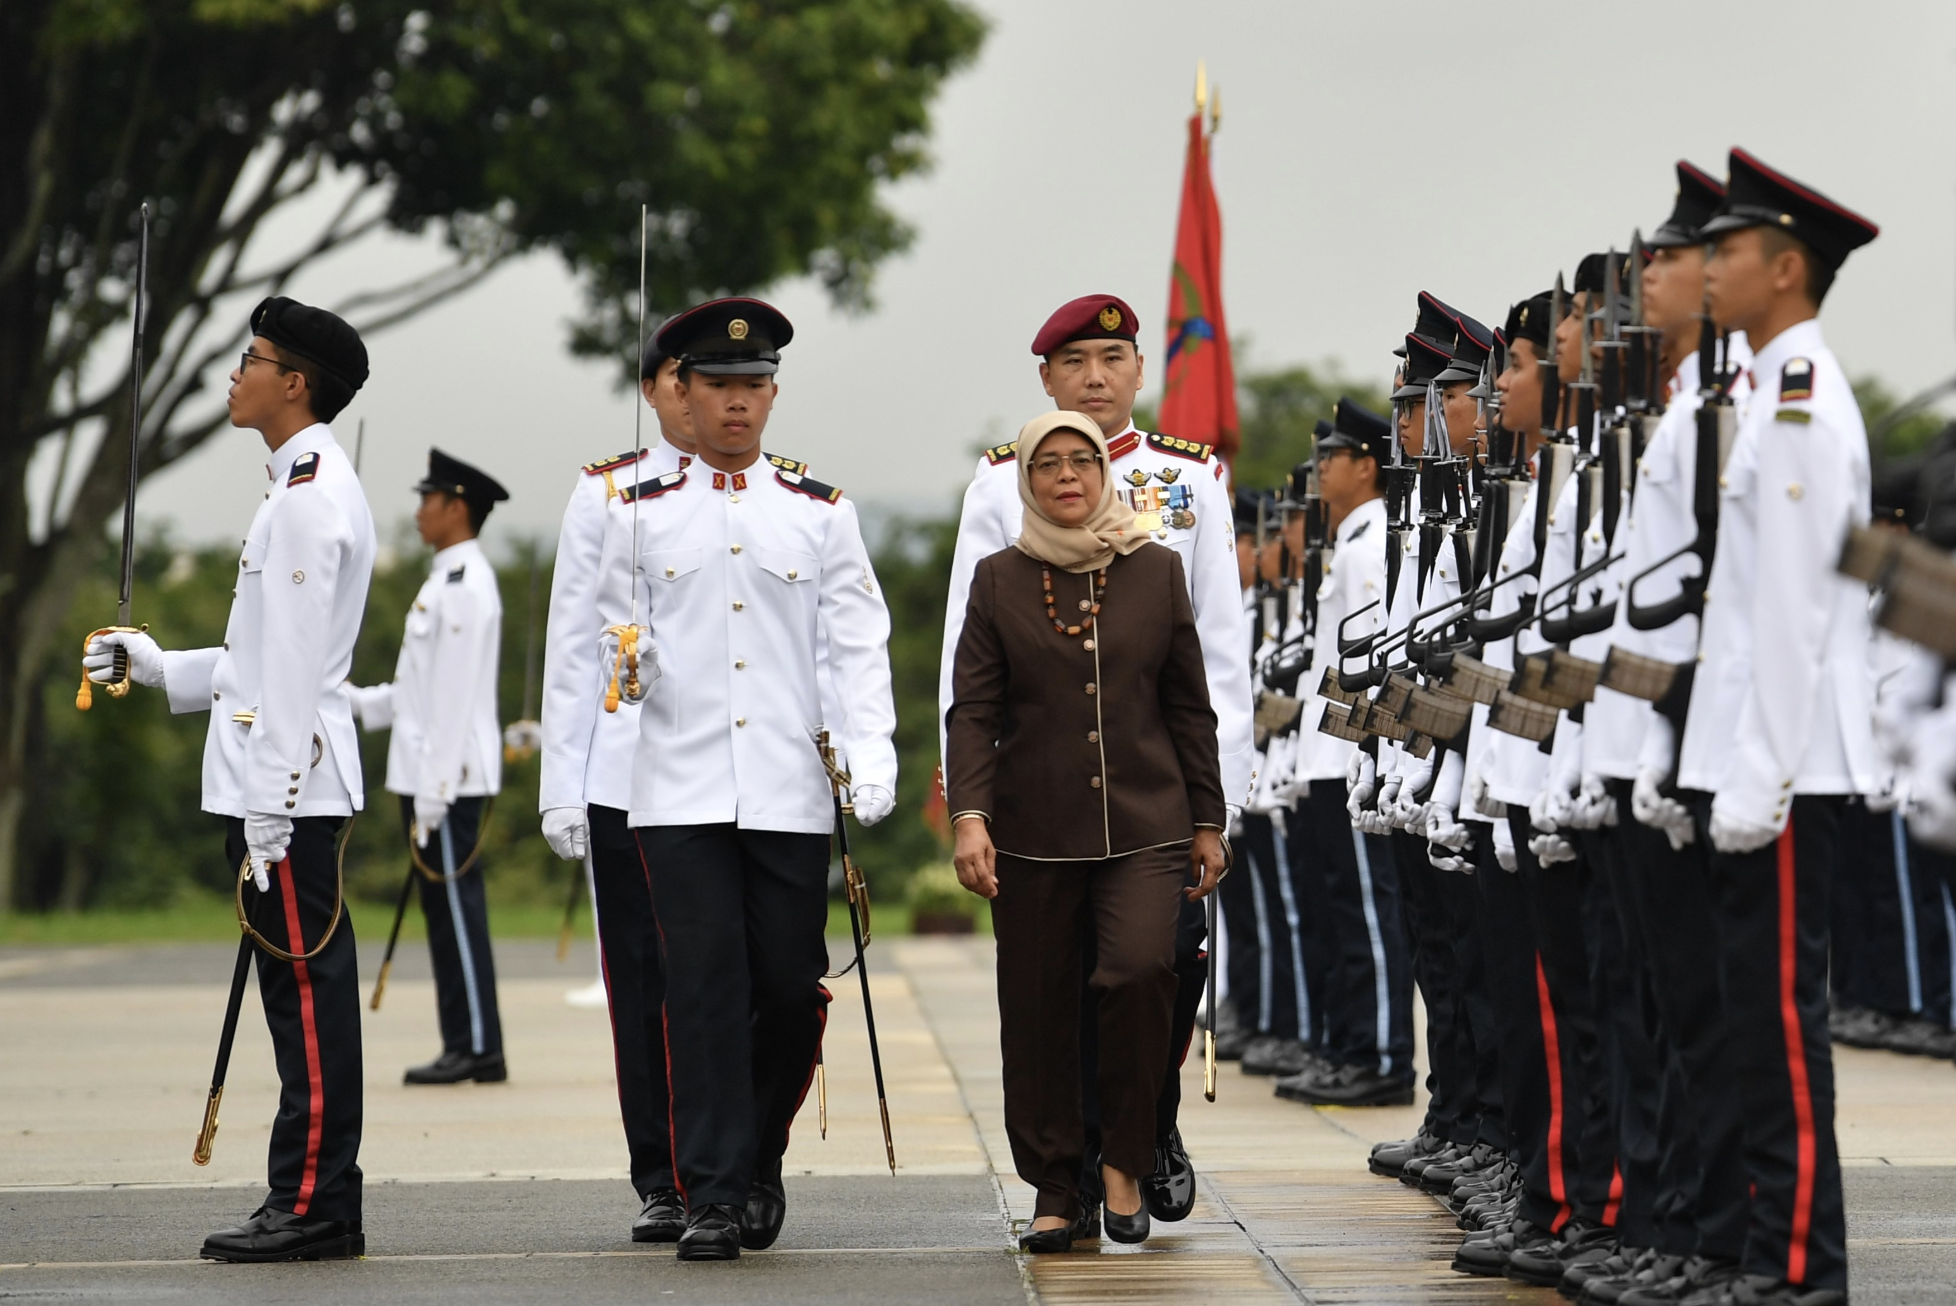 President Halimah Yacob reviewing the contingents at the 115/19 Officer Cadet Commissioning Parade (OCCP) held at SAFTI Military Institute (MI) on December 15. Photo courtesy: Mindef